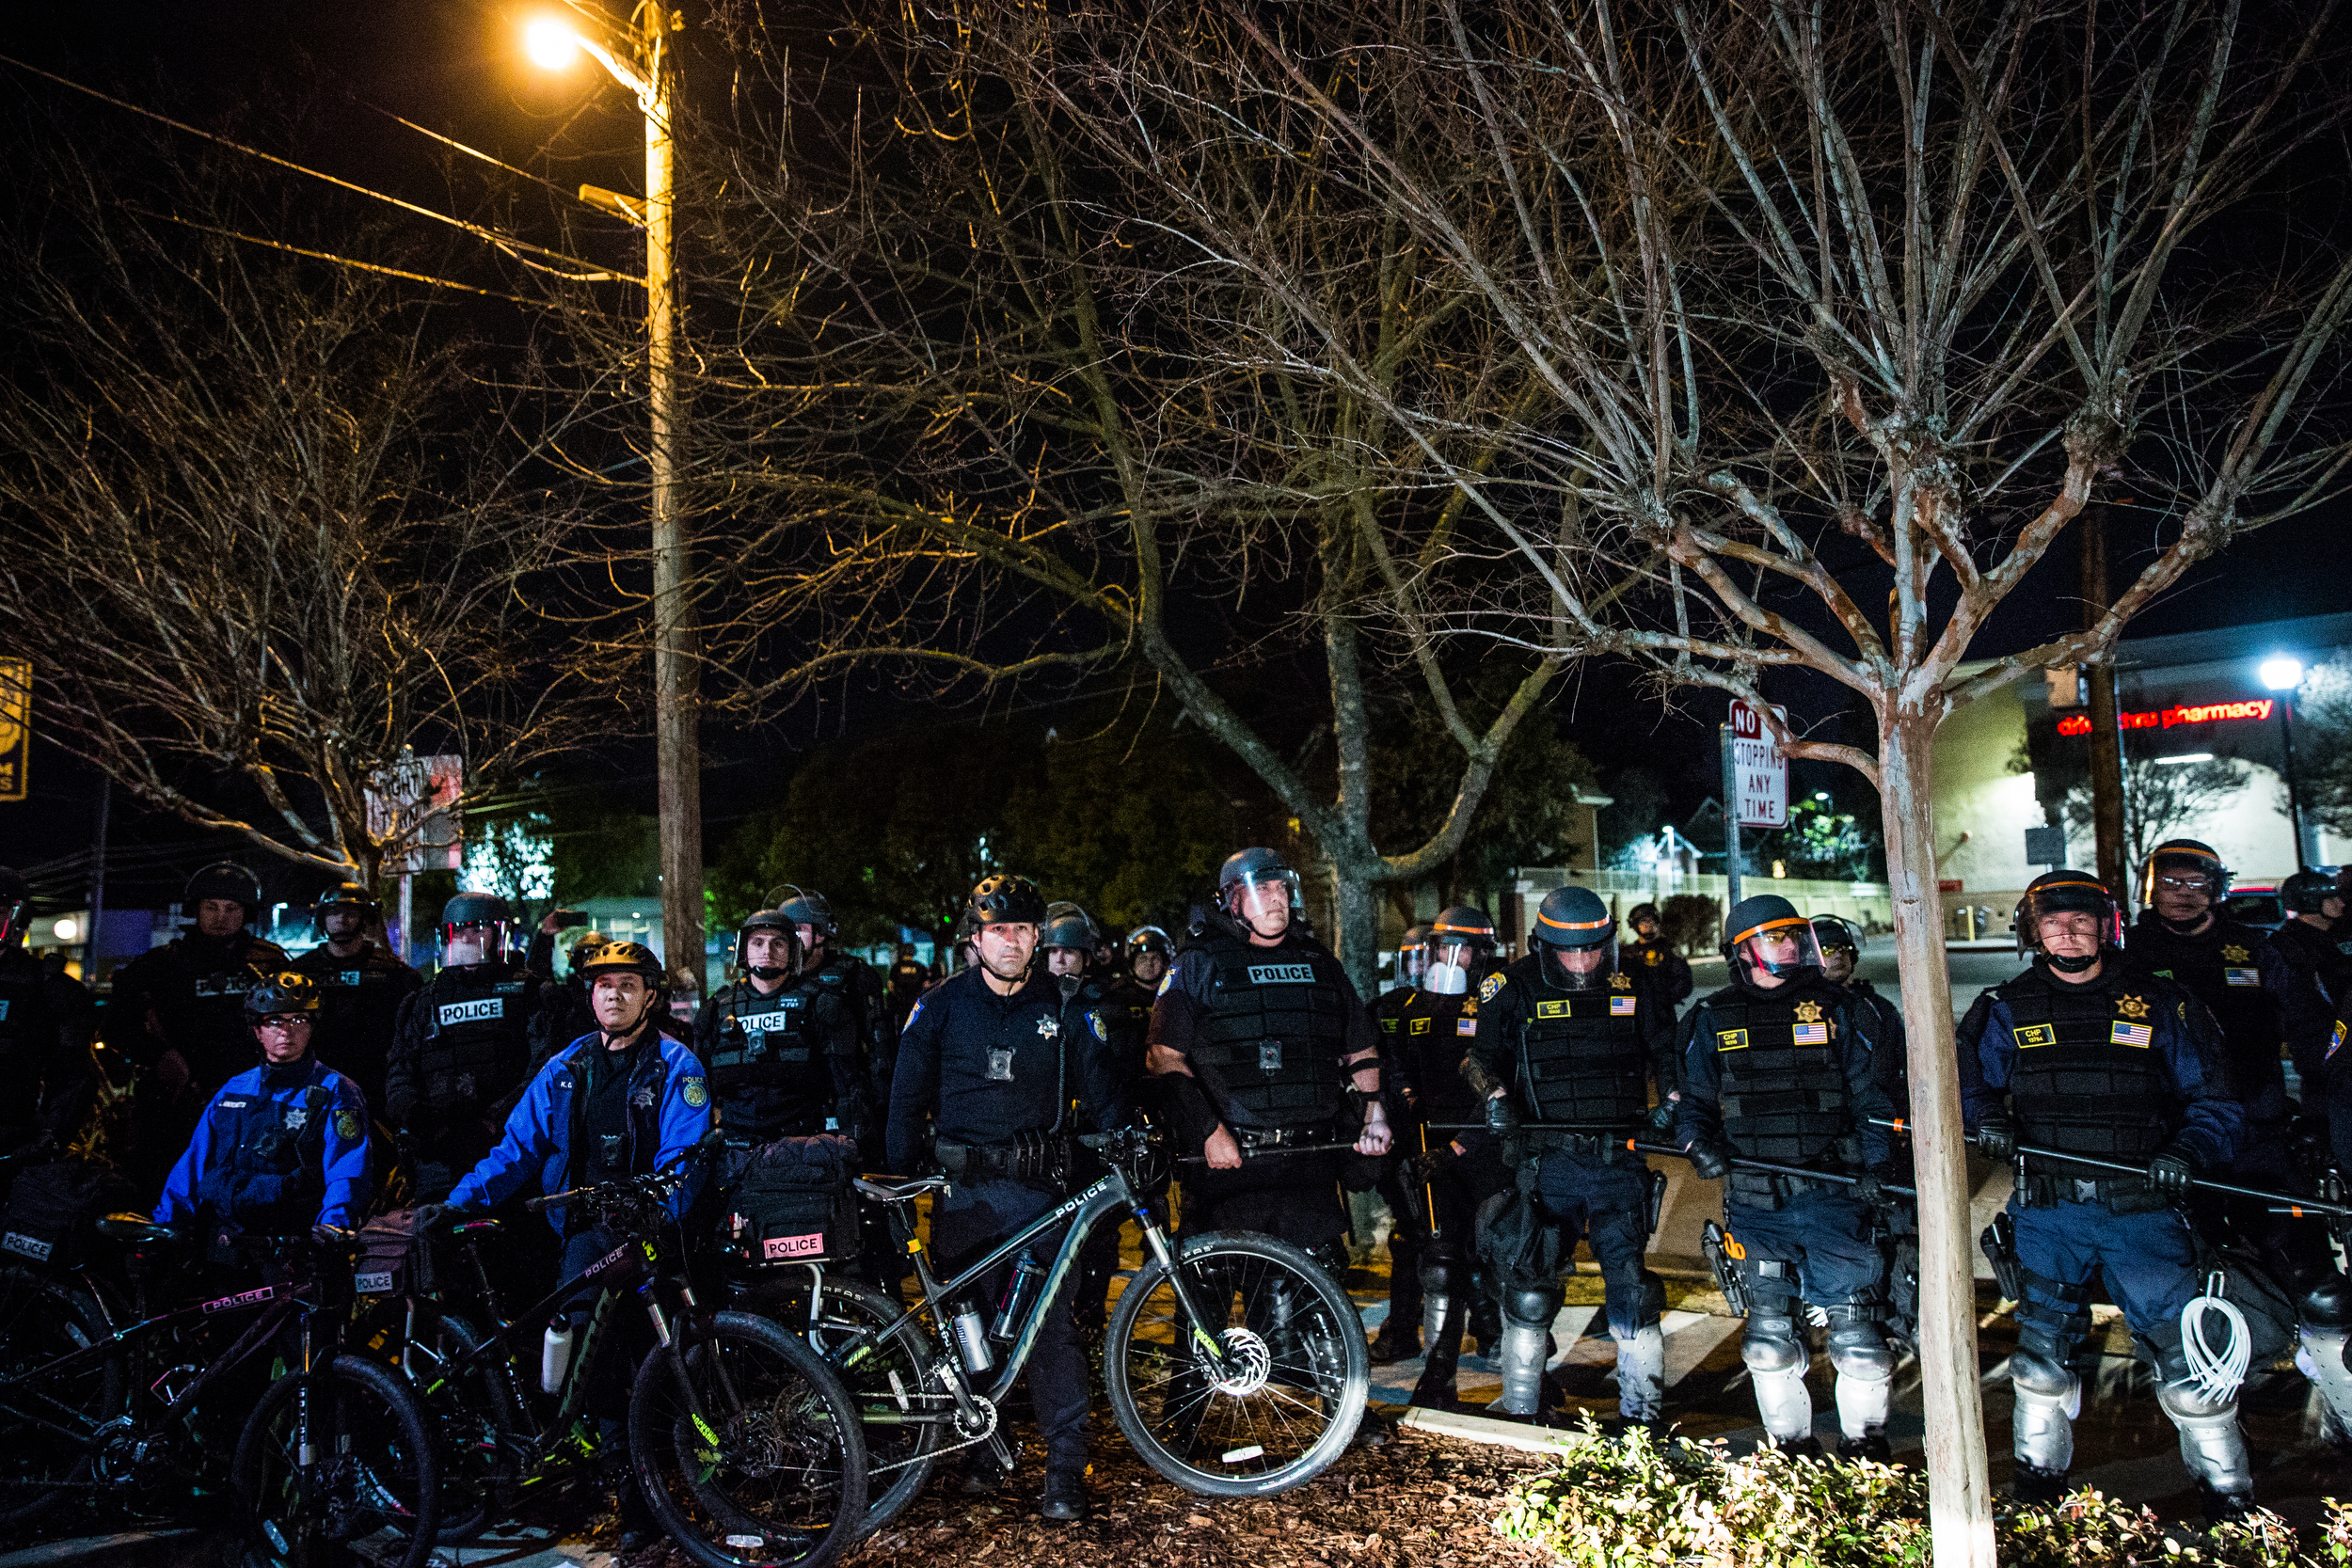 """Police advance on peaceful protestors in the wealthy East Sacramento neighborhood known as the """"Fab Forties"""" to protest the Sacramento County District Attorney's decision to not charge the officers who shot an unarmed Clark in 2018. Sacramento Police ended the evening by arresting 84 peaceful protestors."""